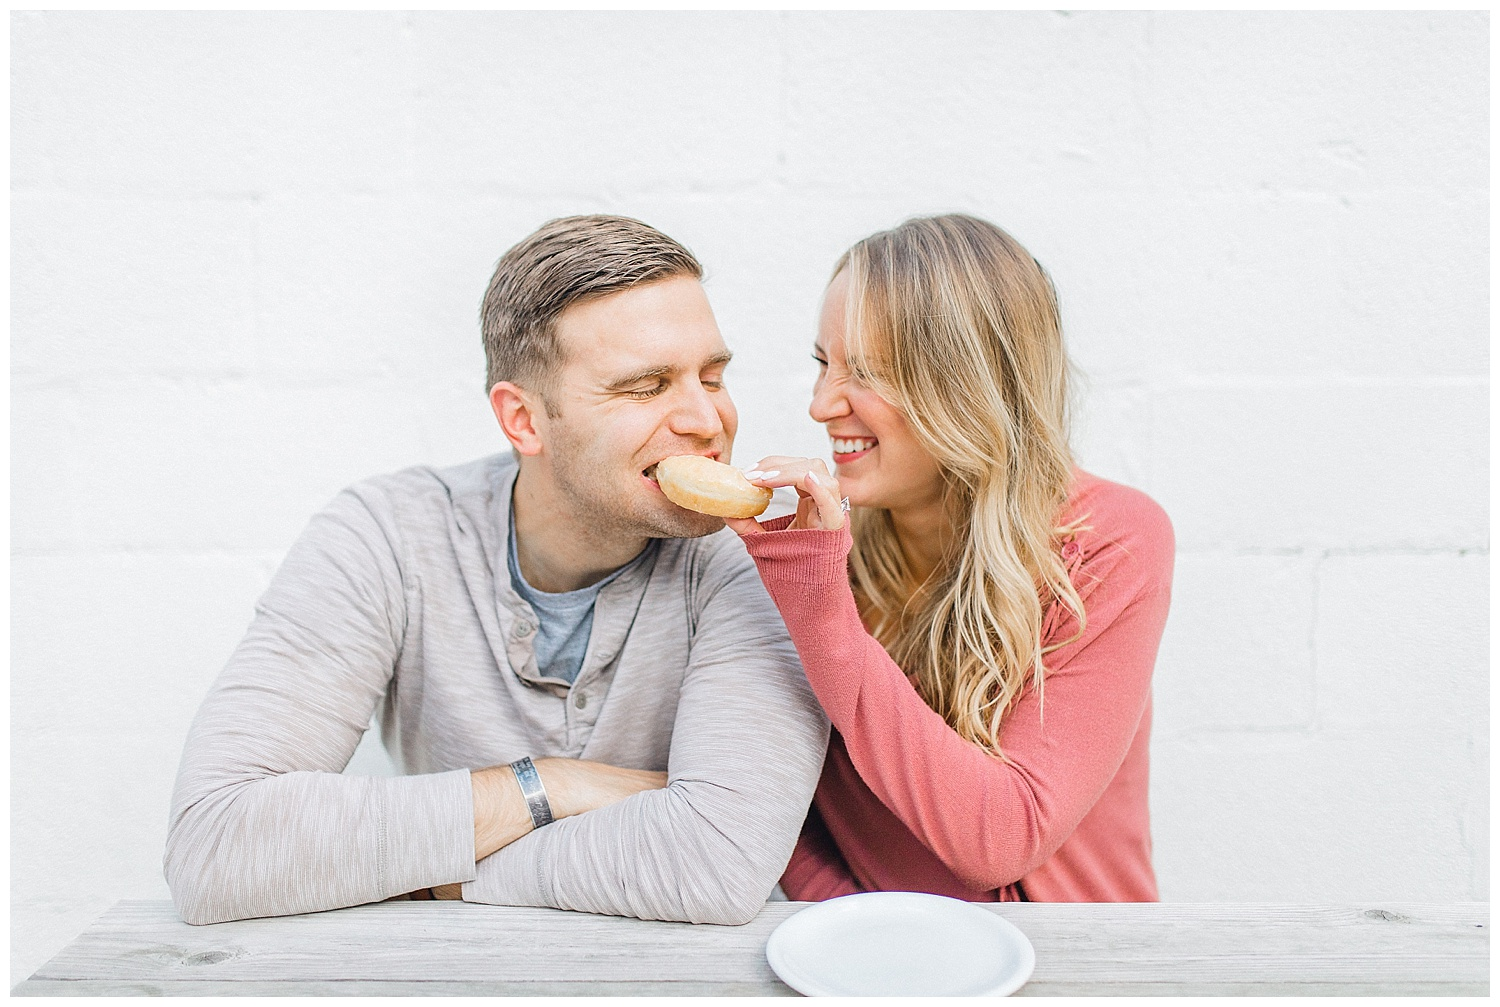 ERC_0833_Downtown Nashville Engagement Session at Barista Parlor | Emma Rose Company Wedding Photographer | Outfit Inspiration for Engagement Session | Kindred Light and Airy Photographer.jpg